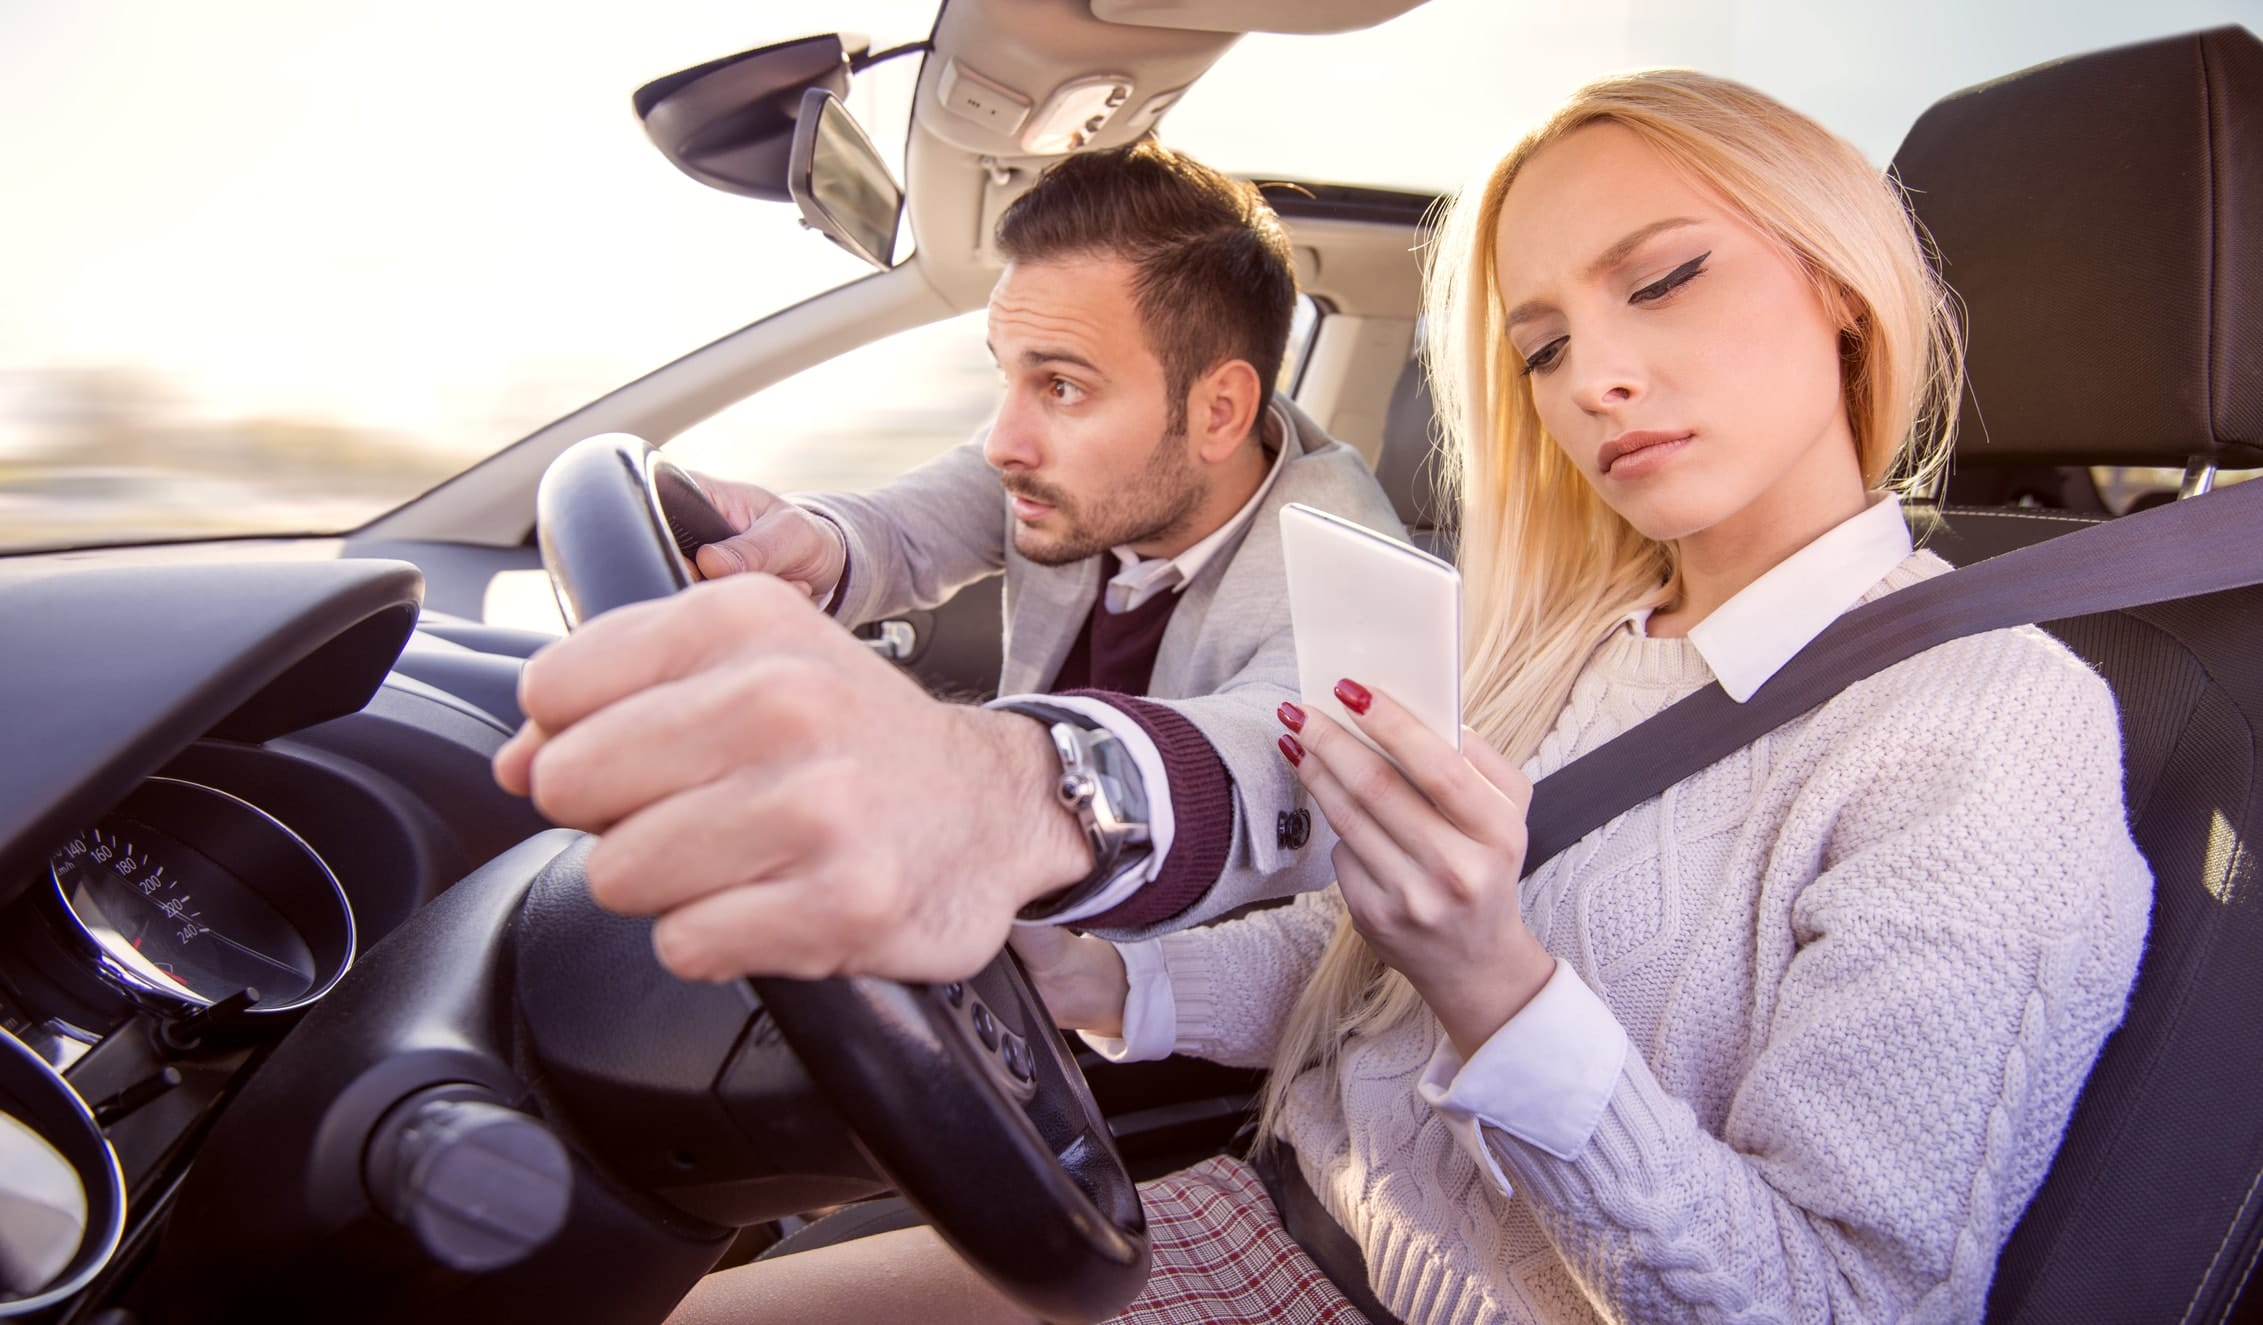 5 choses interdites au volant